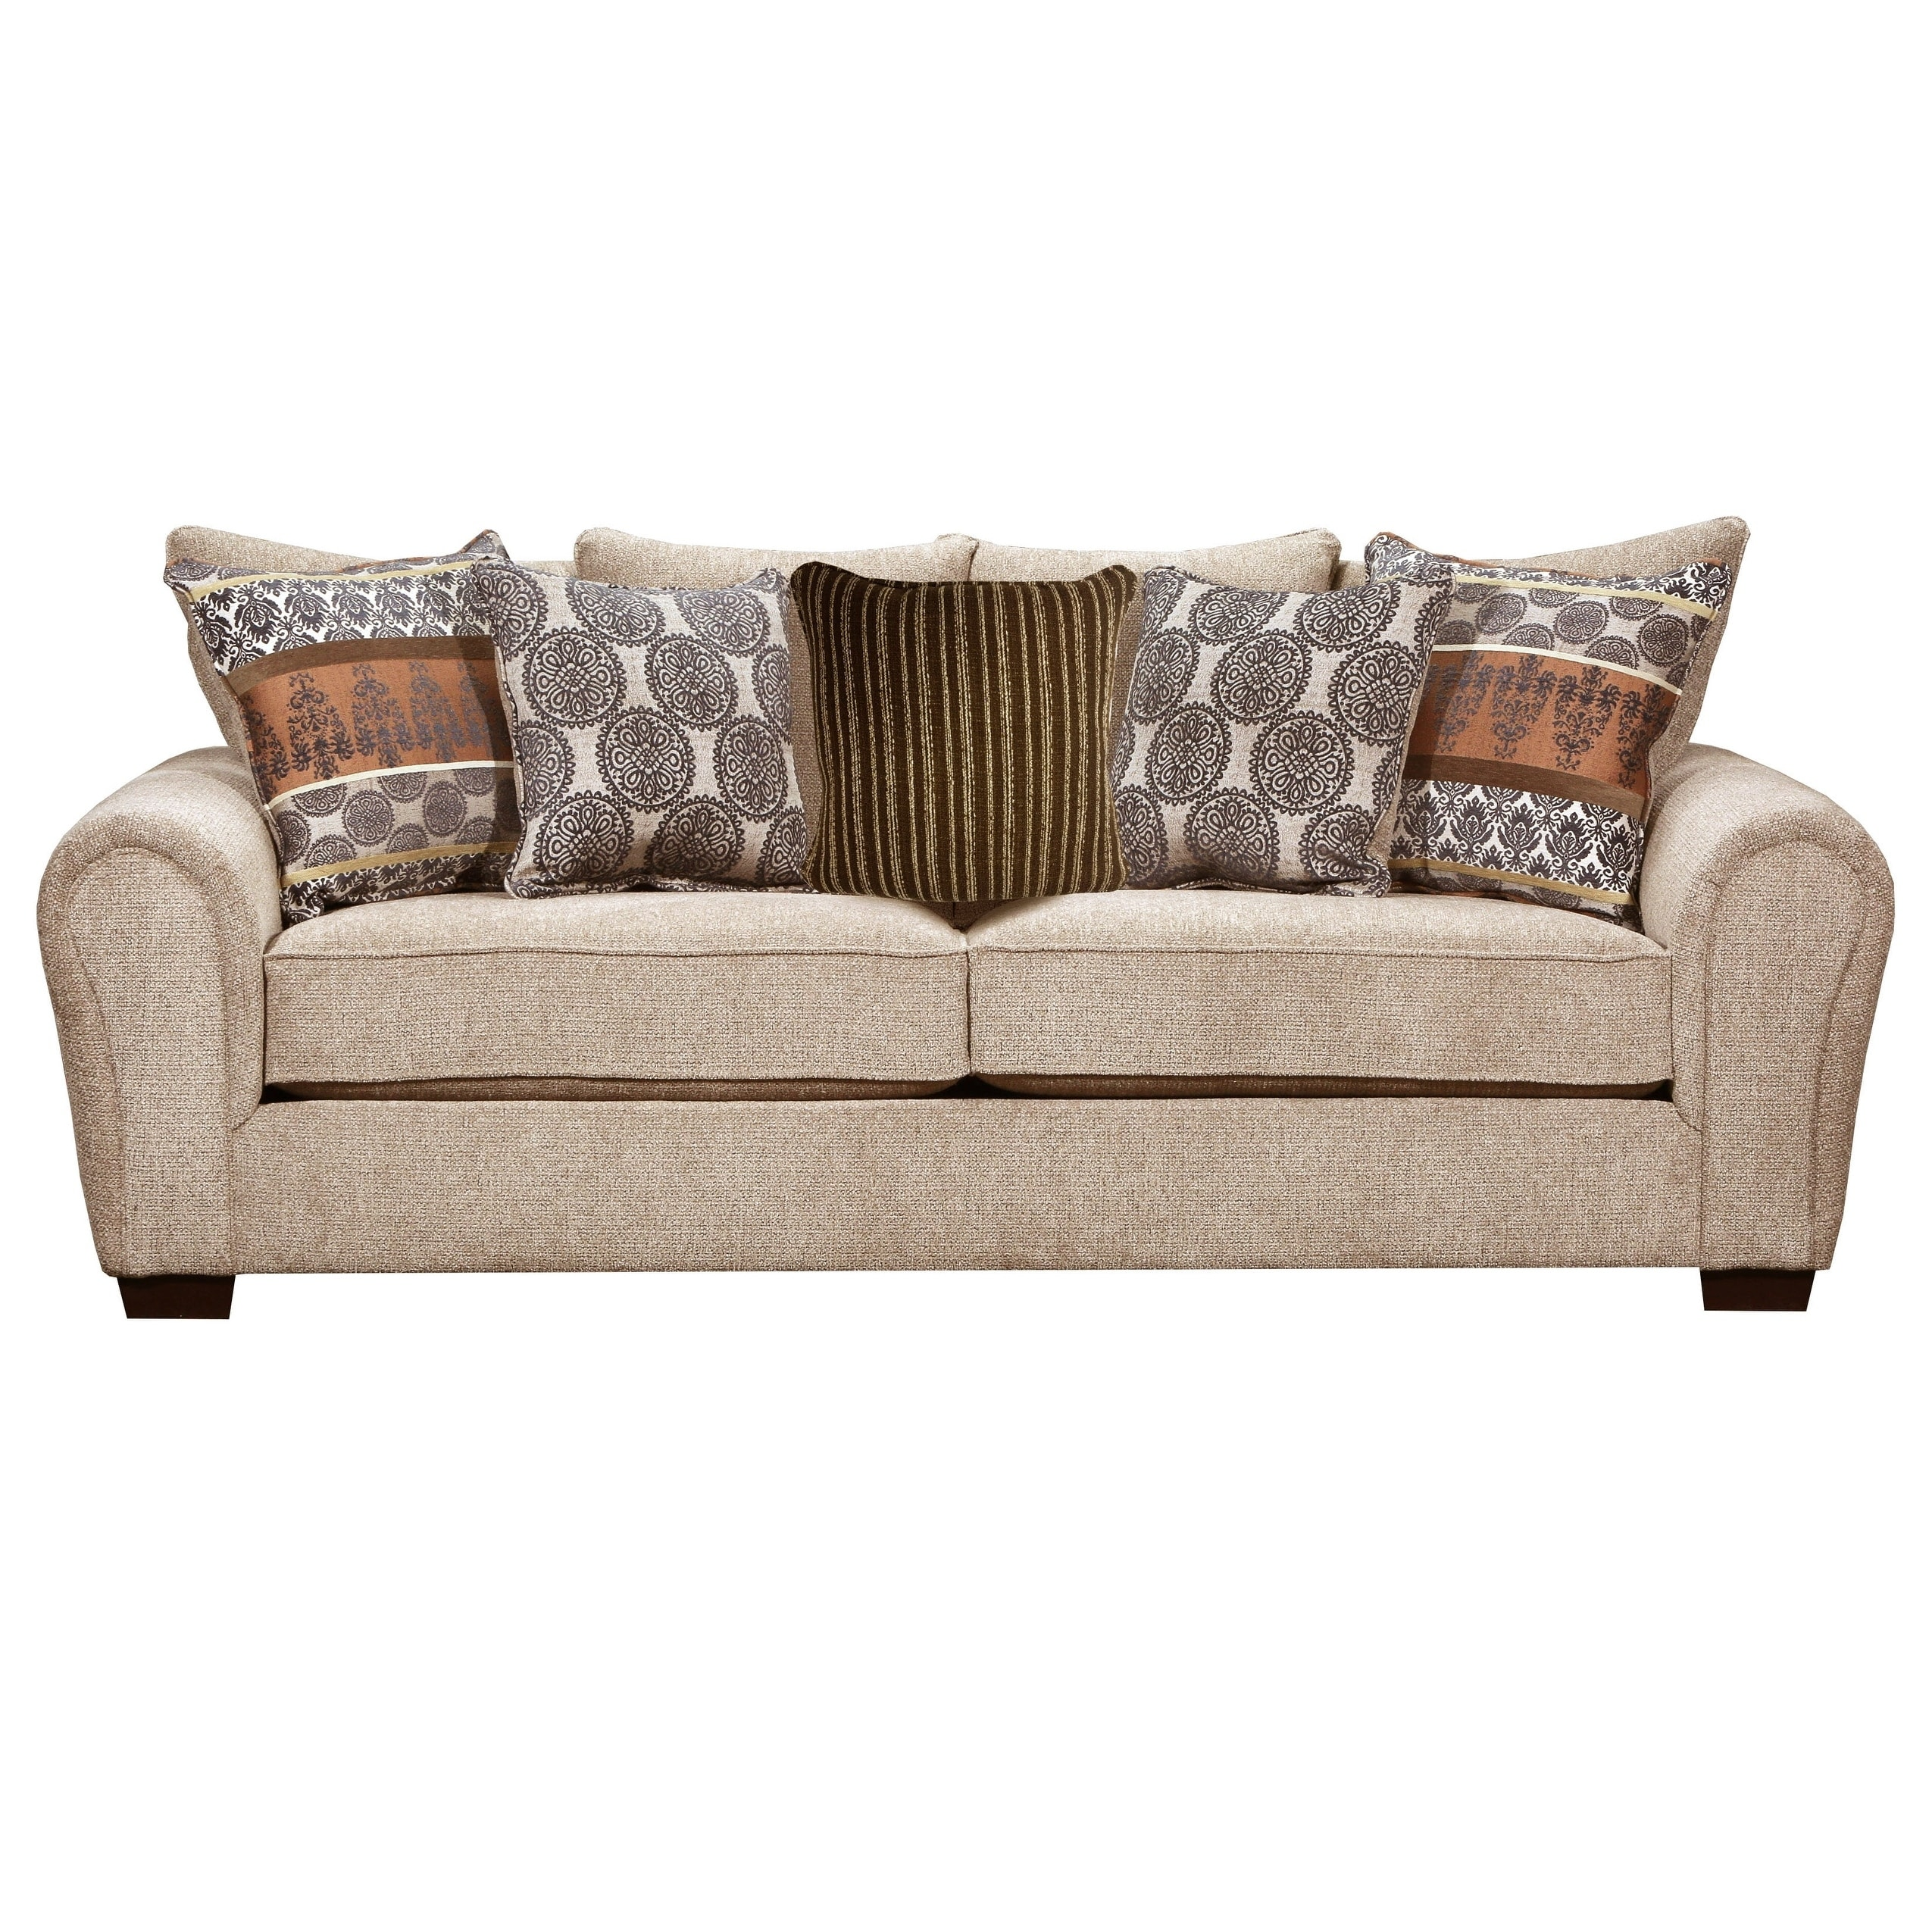 Outback Taupe Queen Sleeper Sofa